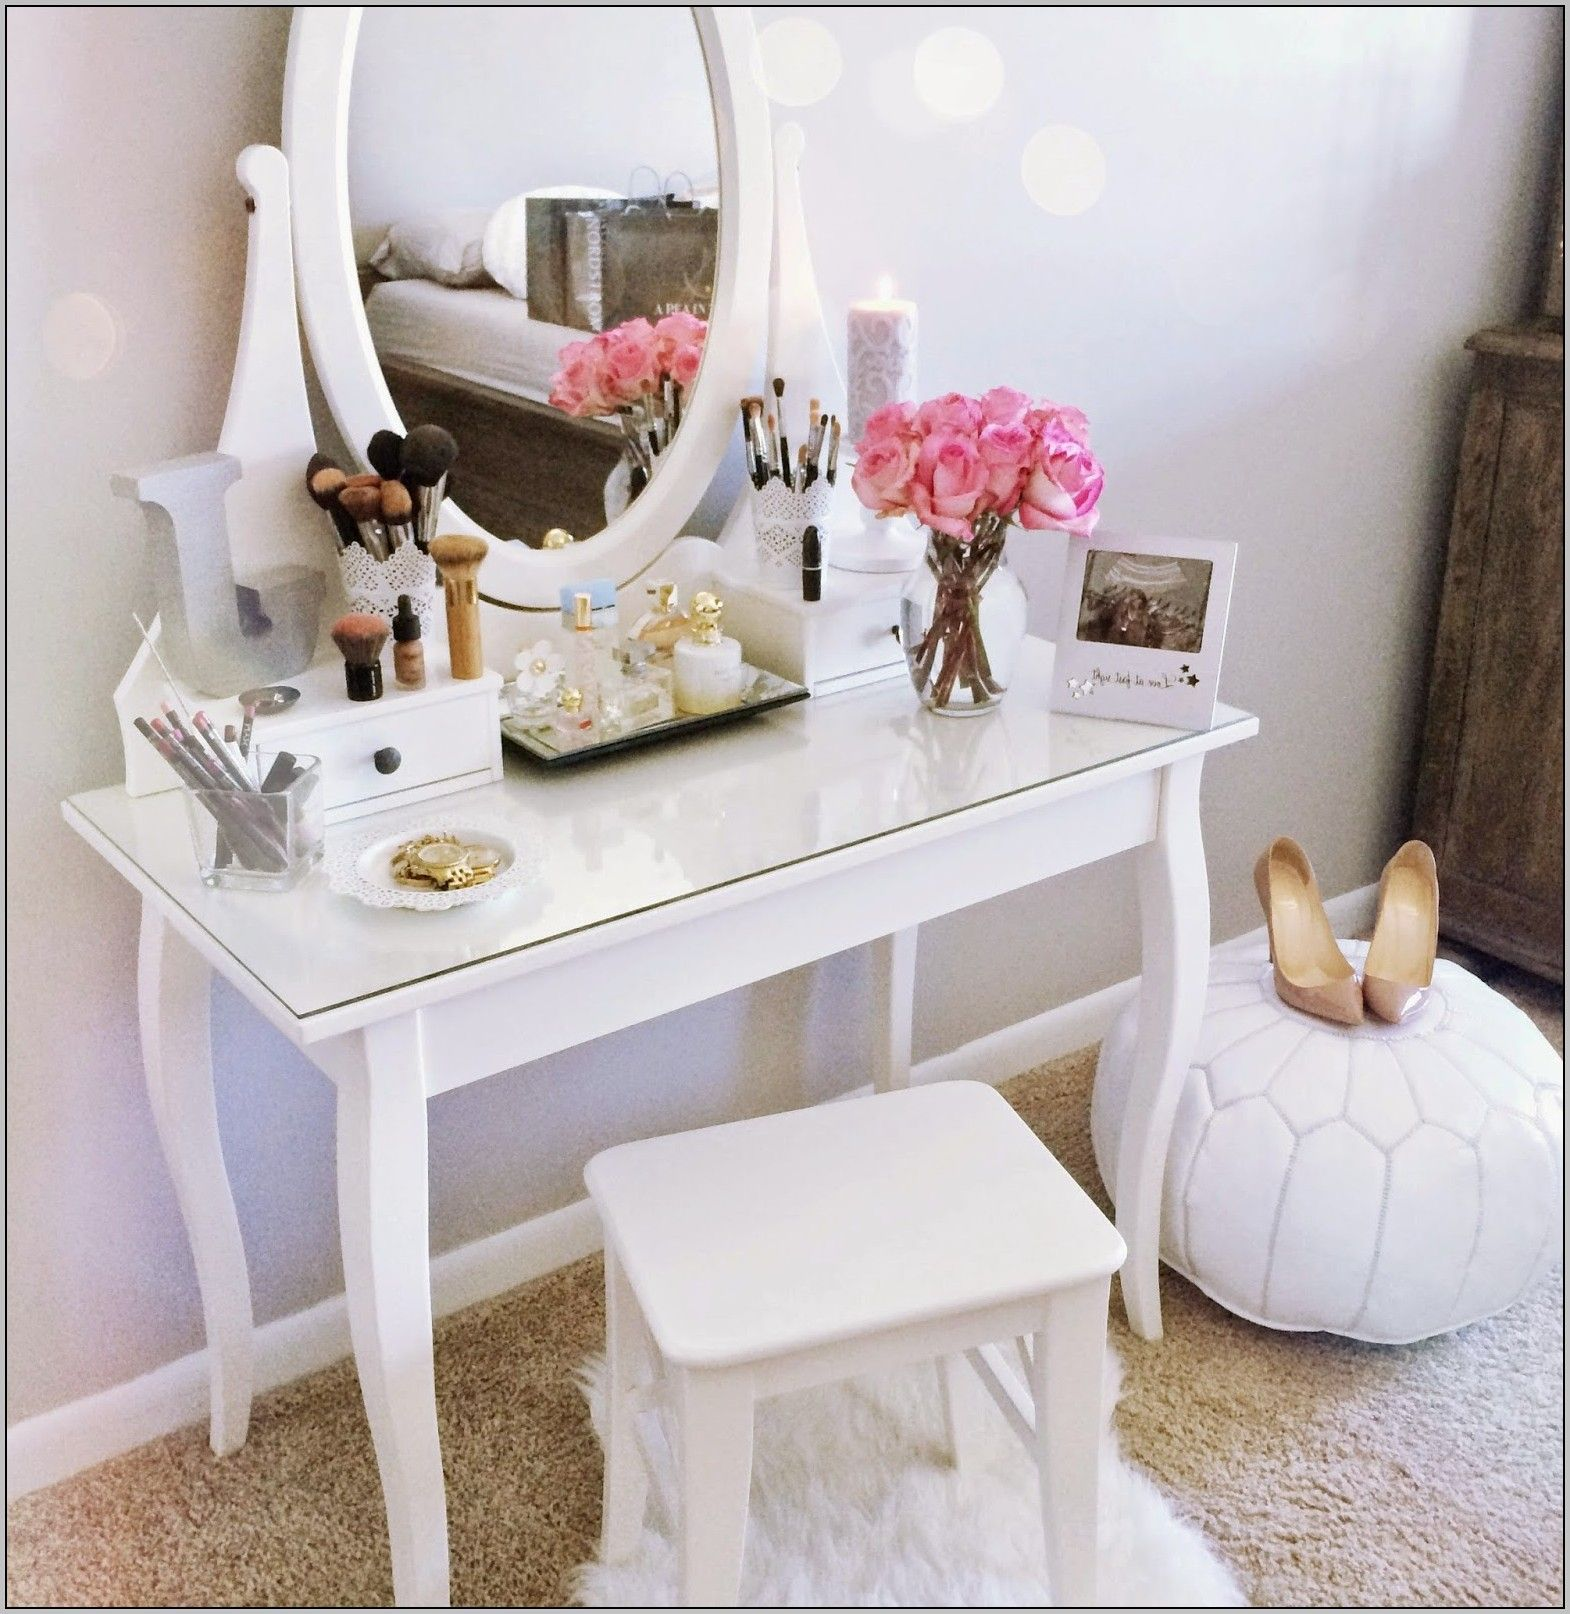 Makeup Vanity Desk Bed Bath And Beyond Room Inspiration Room Decor Home Decor